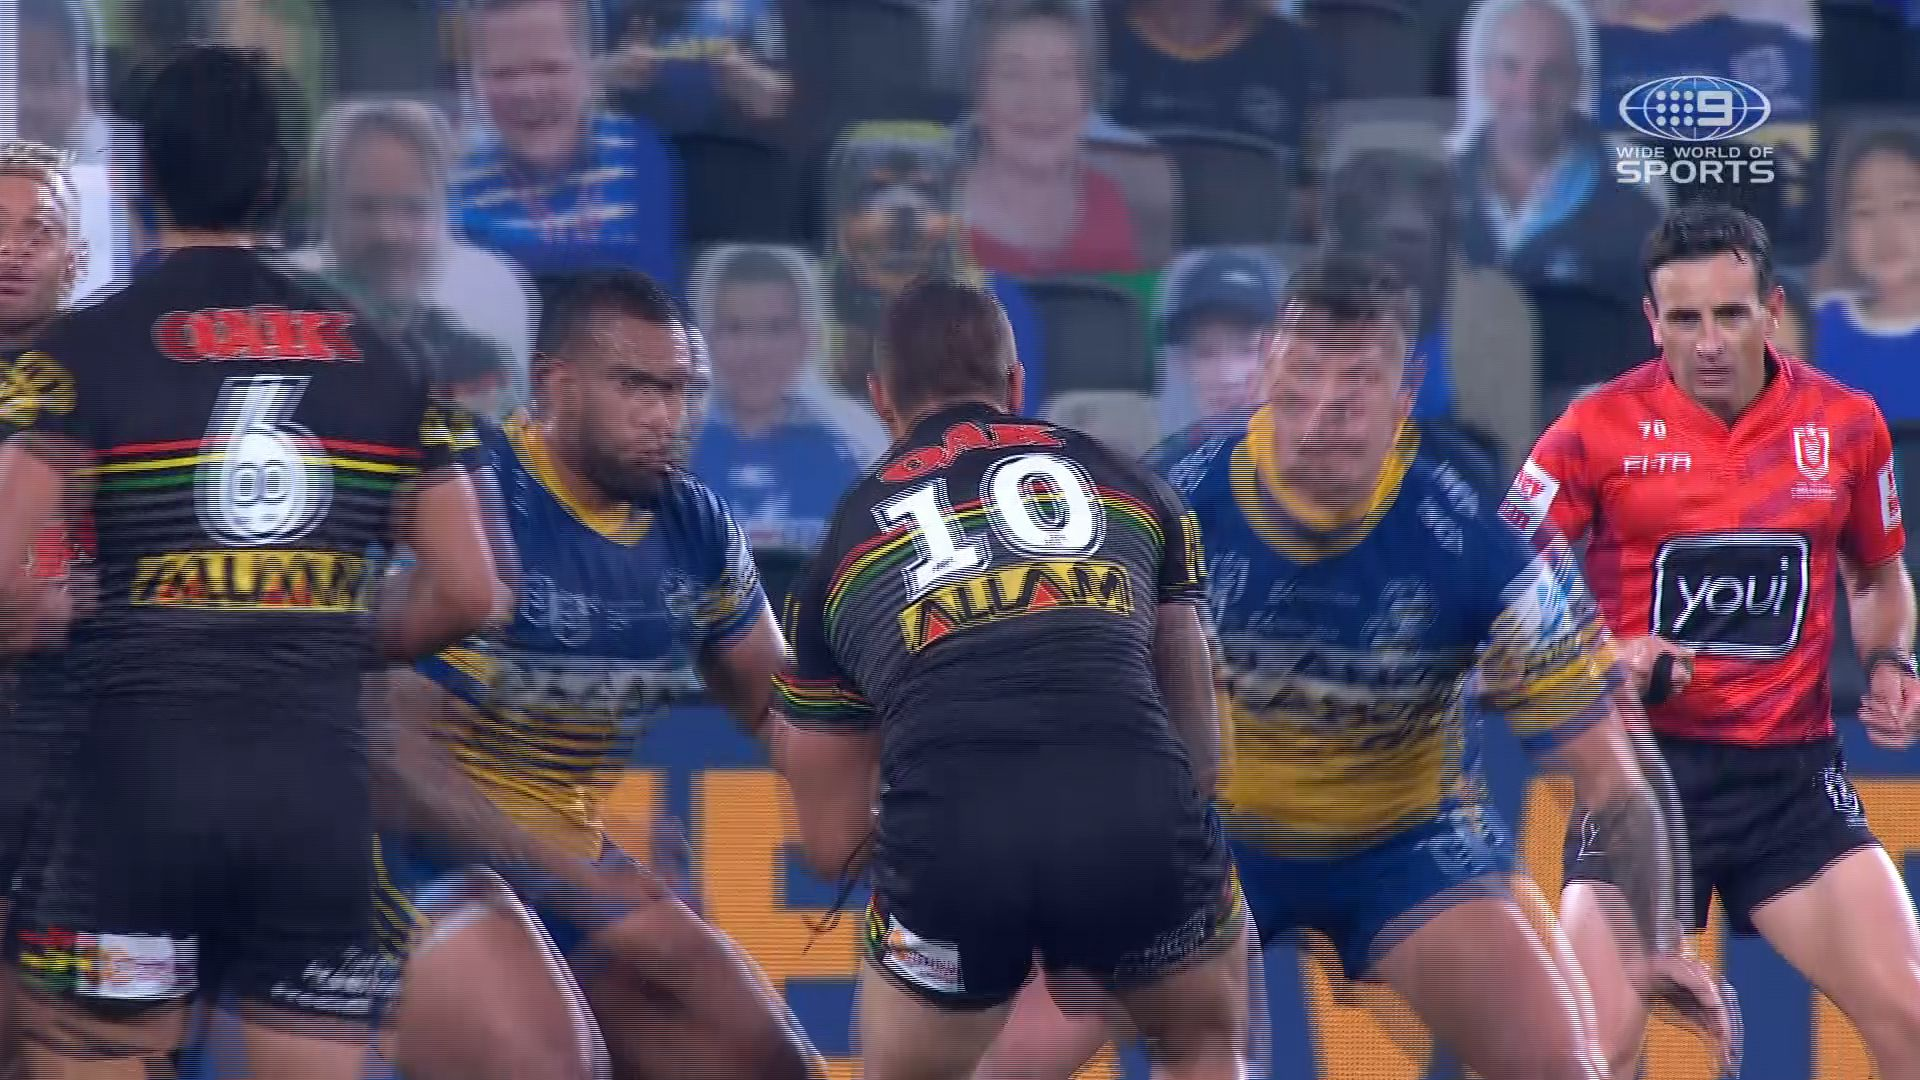 Parramatta Eels react to reports that Junior Paulo will miss out on NRL pre-season for boxing preparation